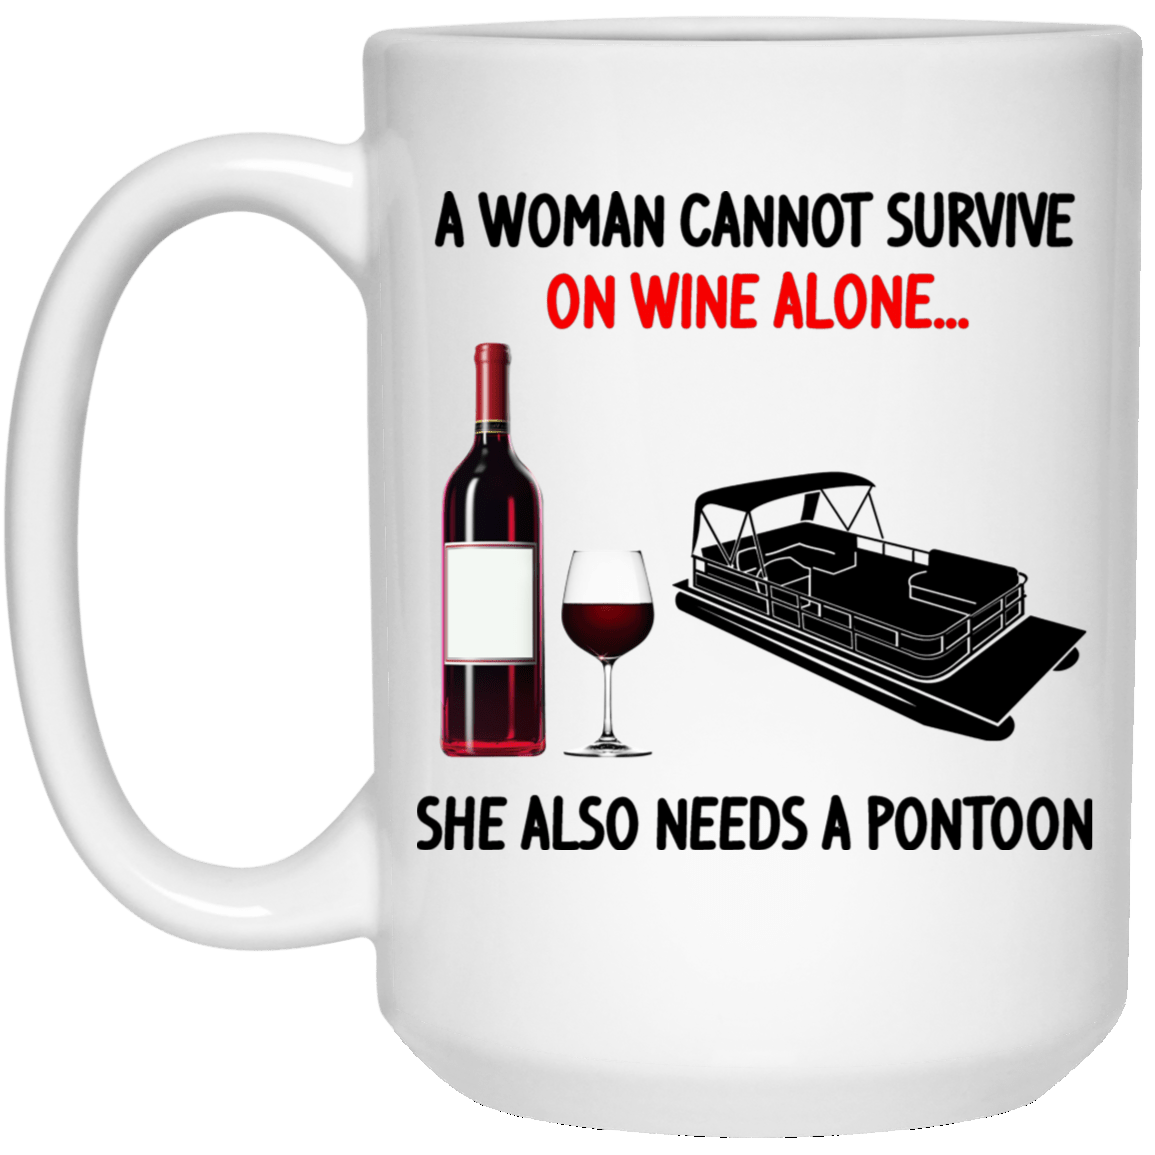 A Woman Cannot Survive On Wine Alone She Also Needs A Pontoon White Mug 1032-9816-92839339-47456 - Tee Ript